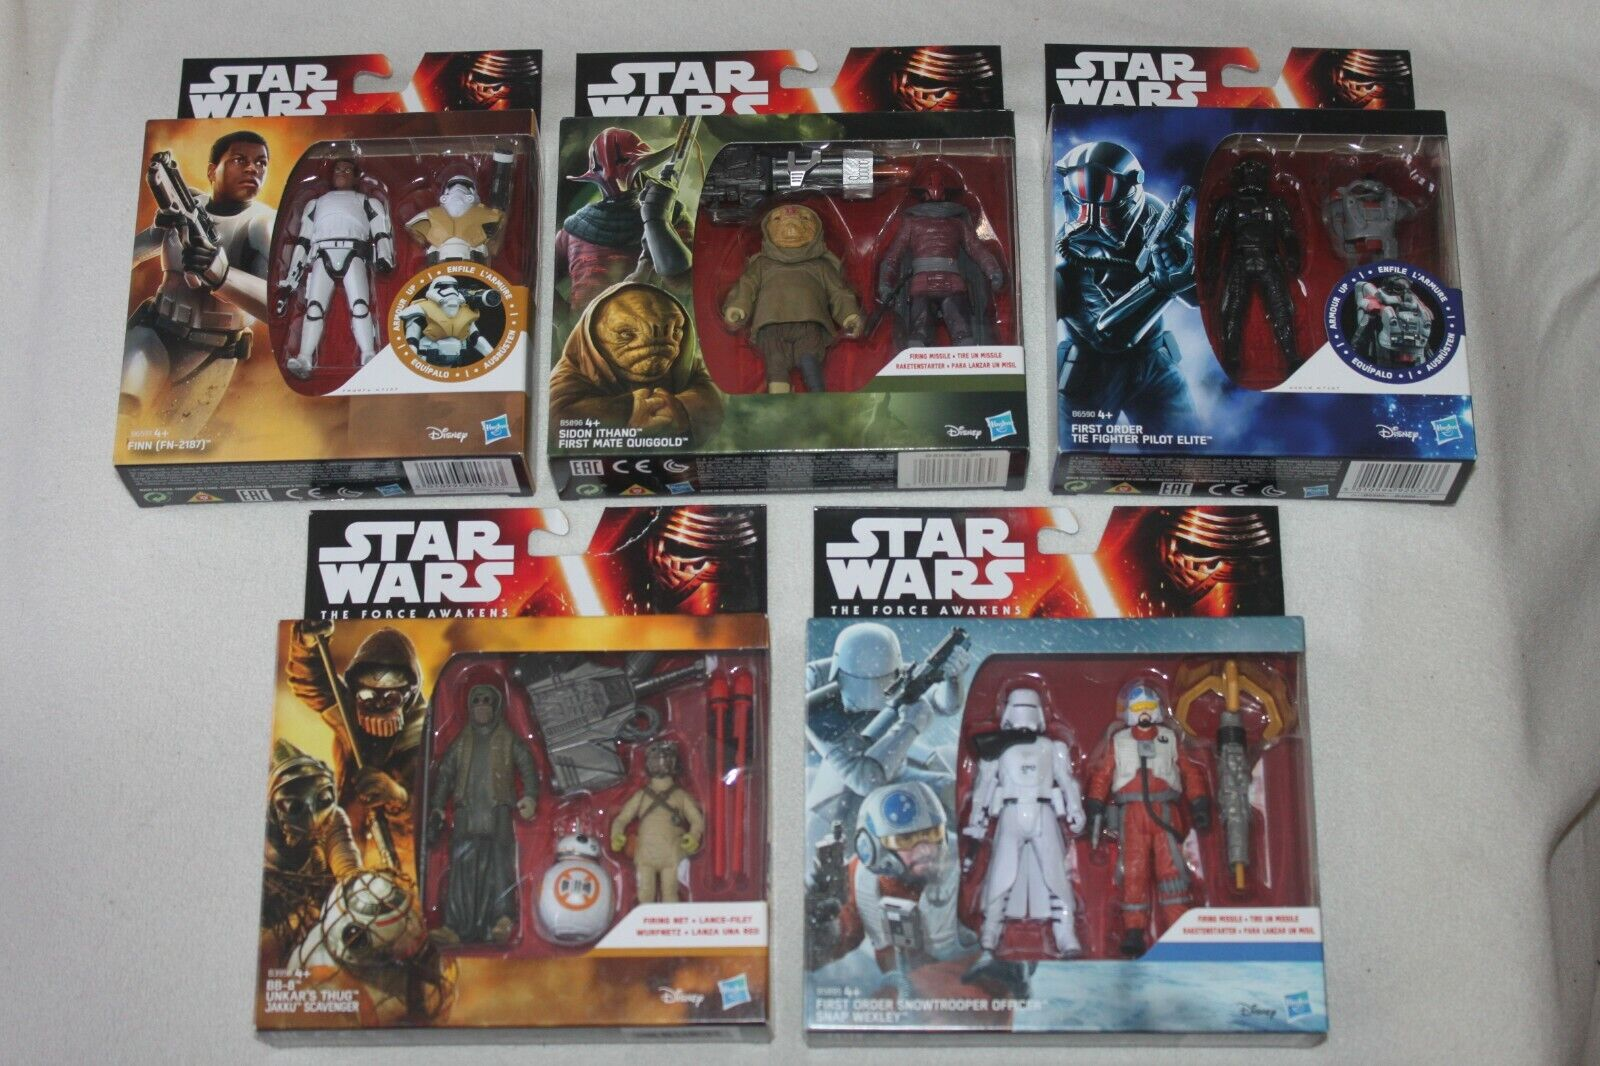 5 x STAR WARS THE FORCE AWAKENS boxsets 9 figures inc Snap Wexley + Finn FN-2187